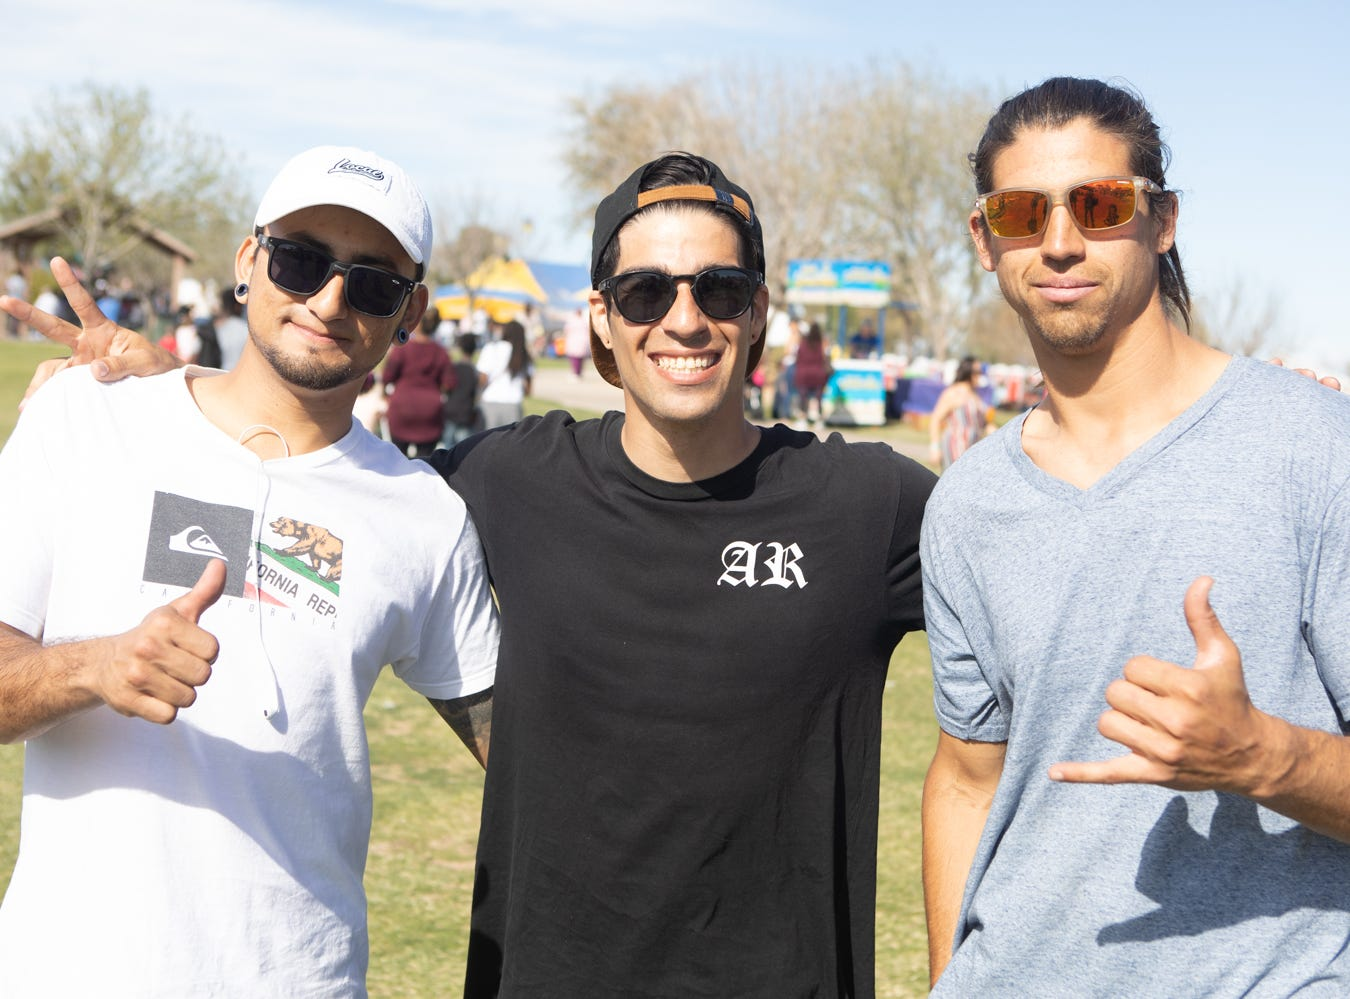 These fellas enjoyed good hangs at the Chandler Ostrich Festival on Sunday, March. 10, 2019.